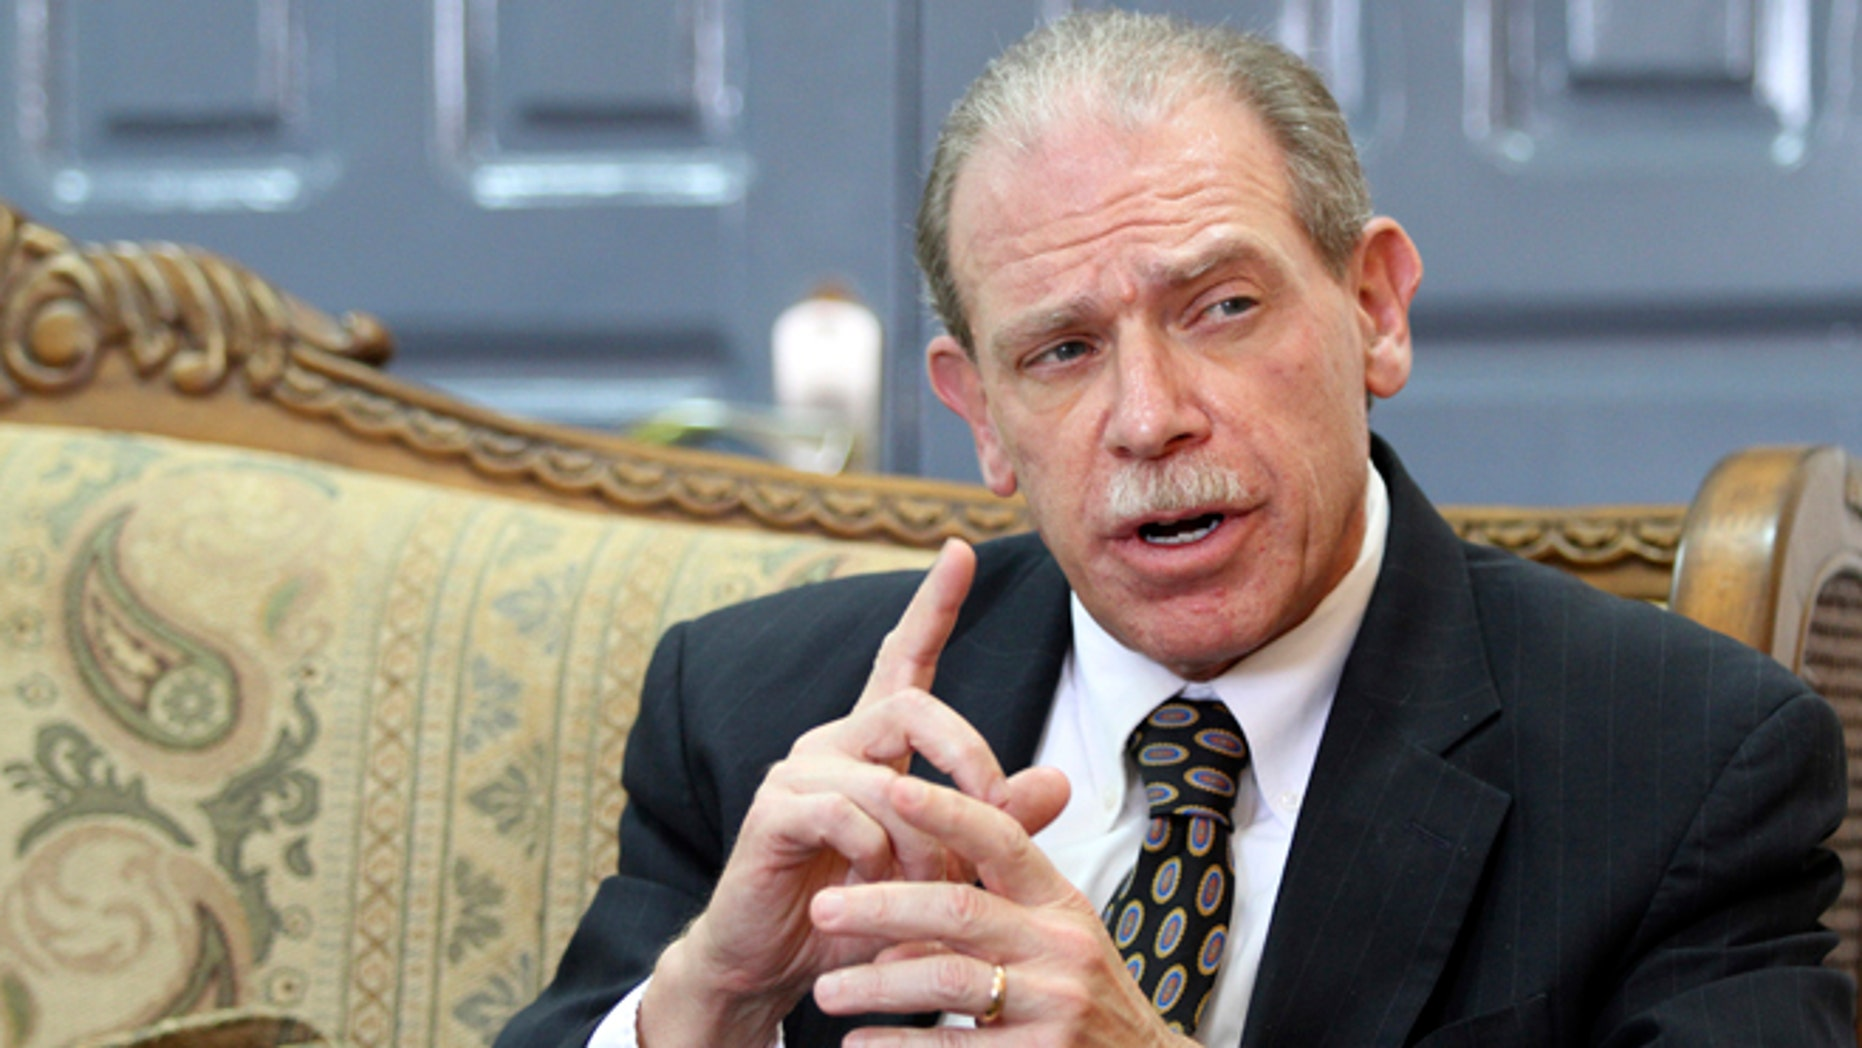 U.S. Ambassador in Sanaa Gerald Feierstein speaks during his meeting with Yemen's Minister of Planning and International Cooperation Mohammed Saeed al-Saidi in Sanaa May 2, 2012.